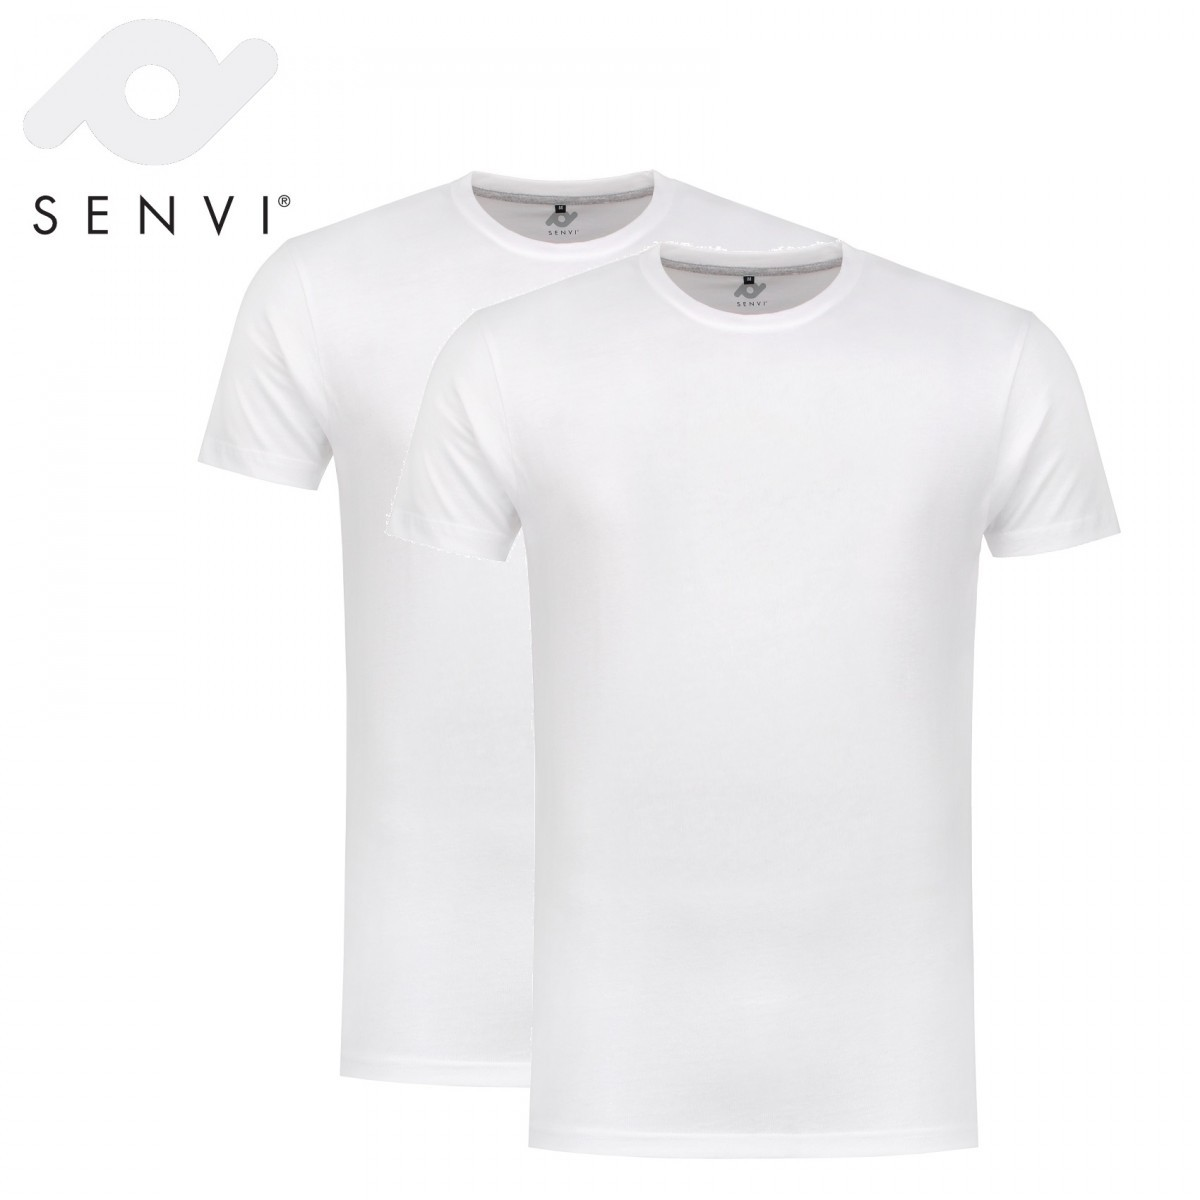 Senvi Basic T-Shirt Wit 2 Pack Maat L